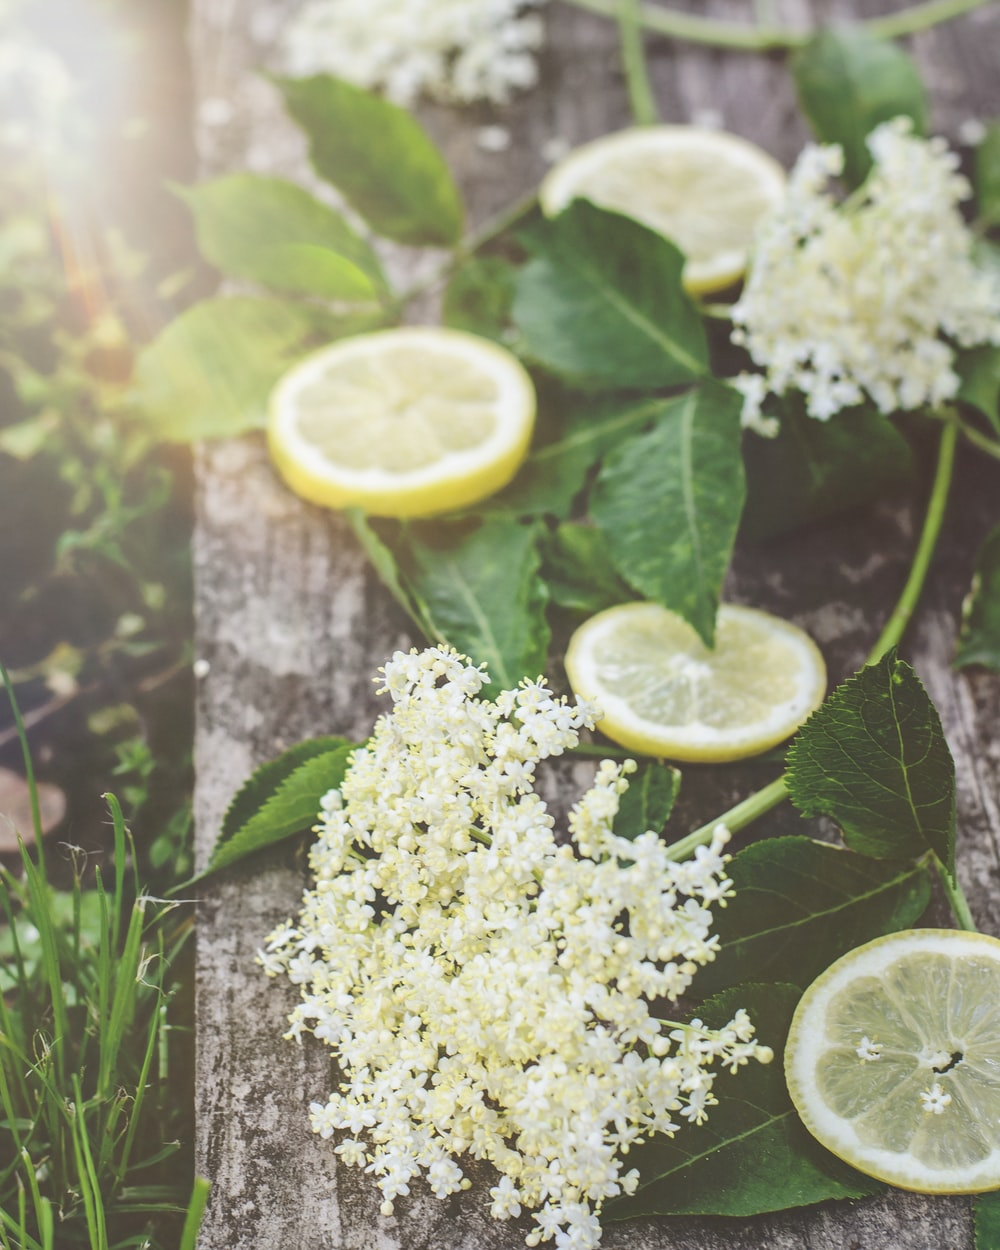 white flowers and sliced of lemon